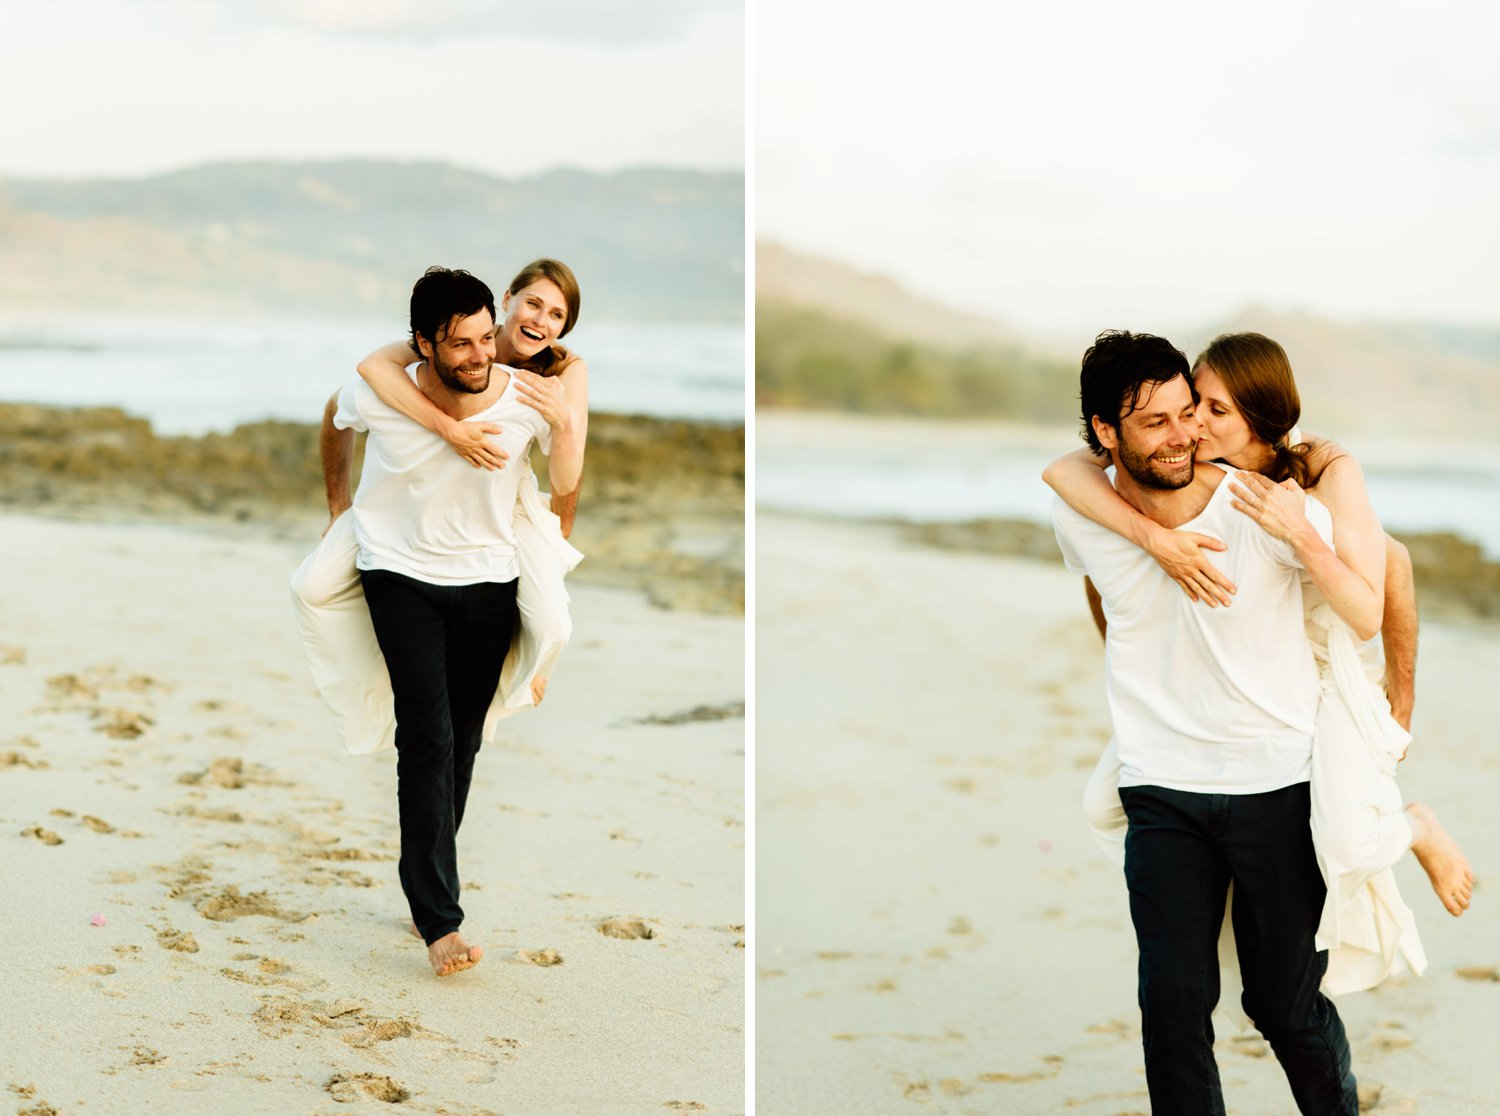 Its capturing those intimate moments that is really important to me for our wedding photos! Love the idea of an intimate elopement on the beach!  Intimate wedding photography by Costa Rica destination wedding photographer, Maddie Mae.